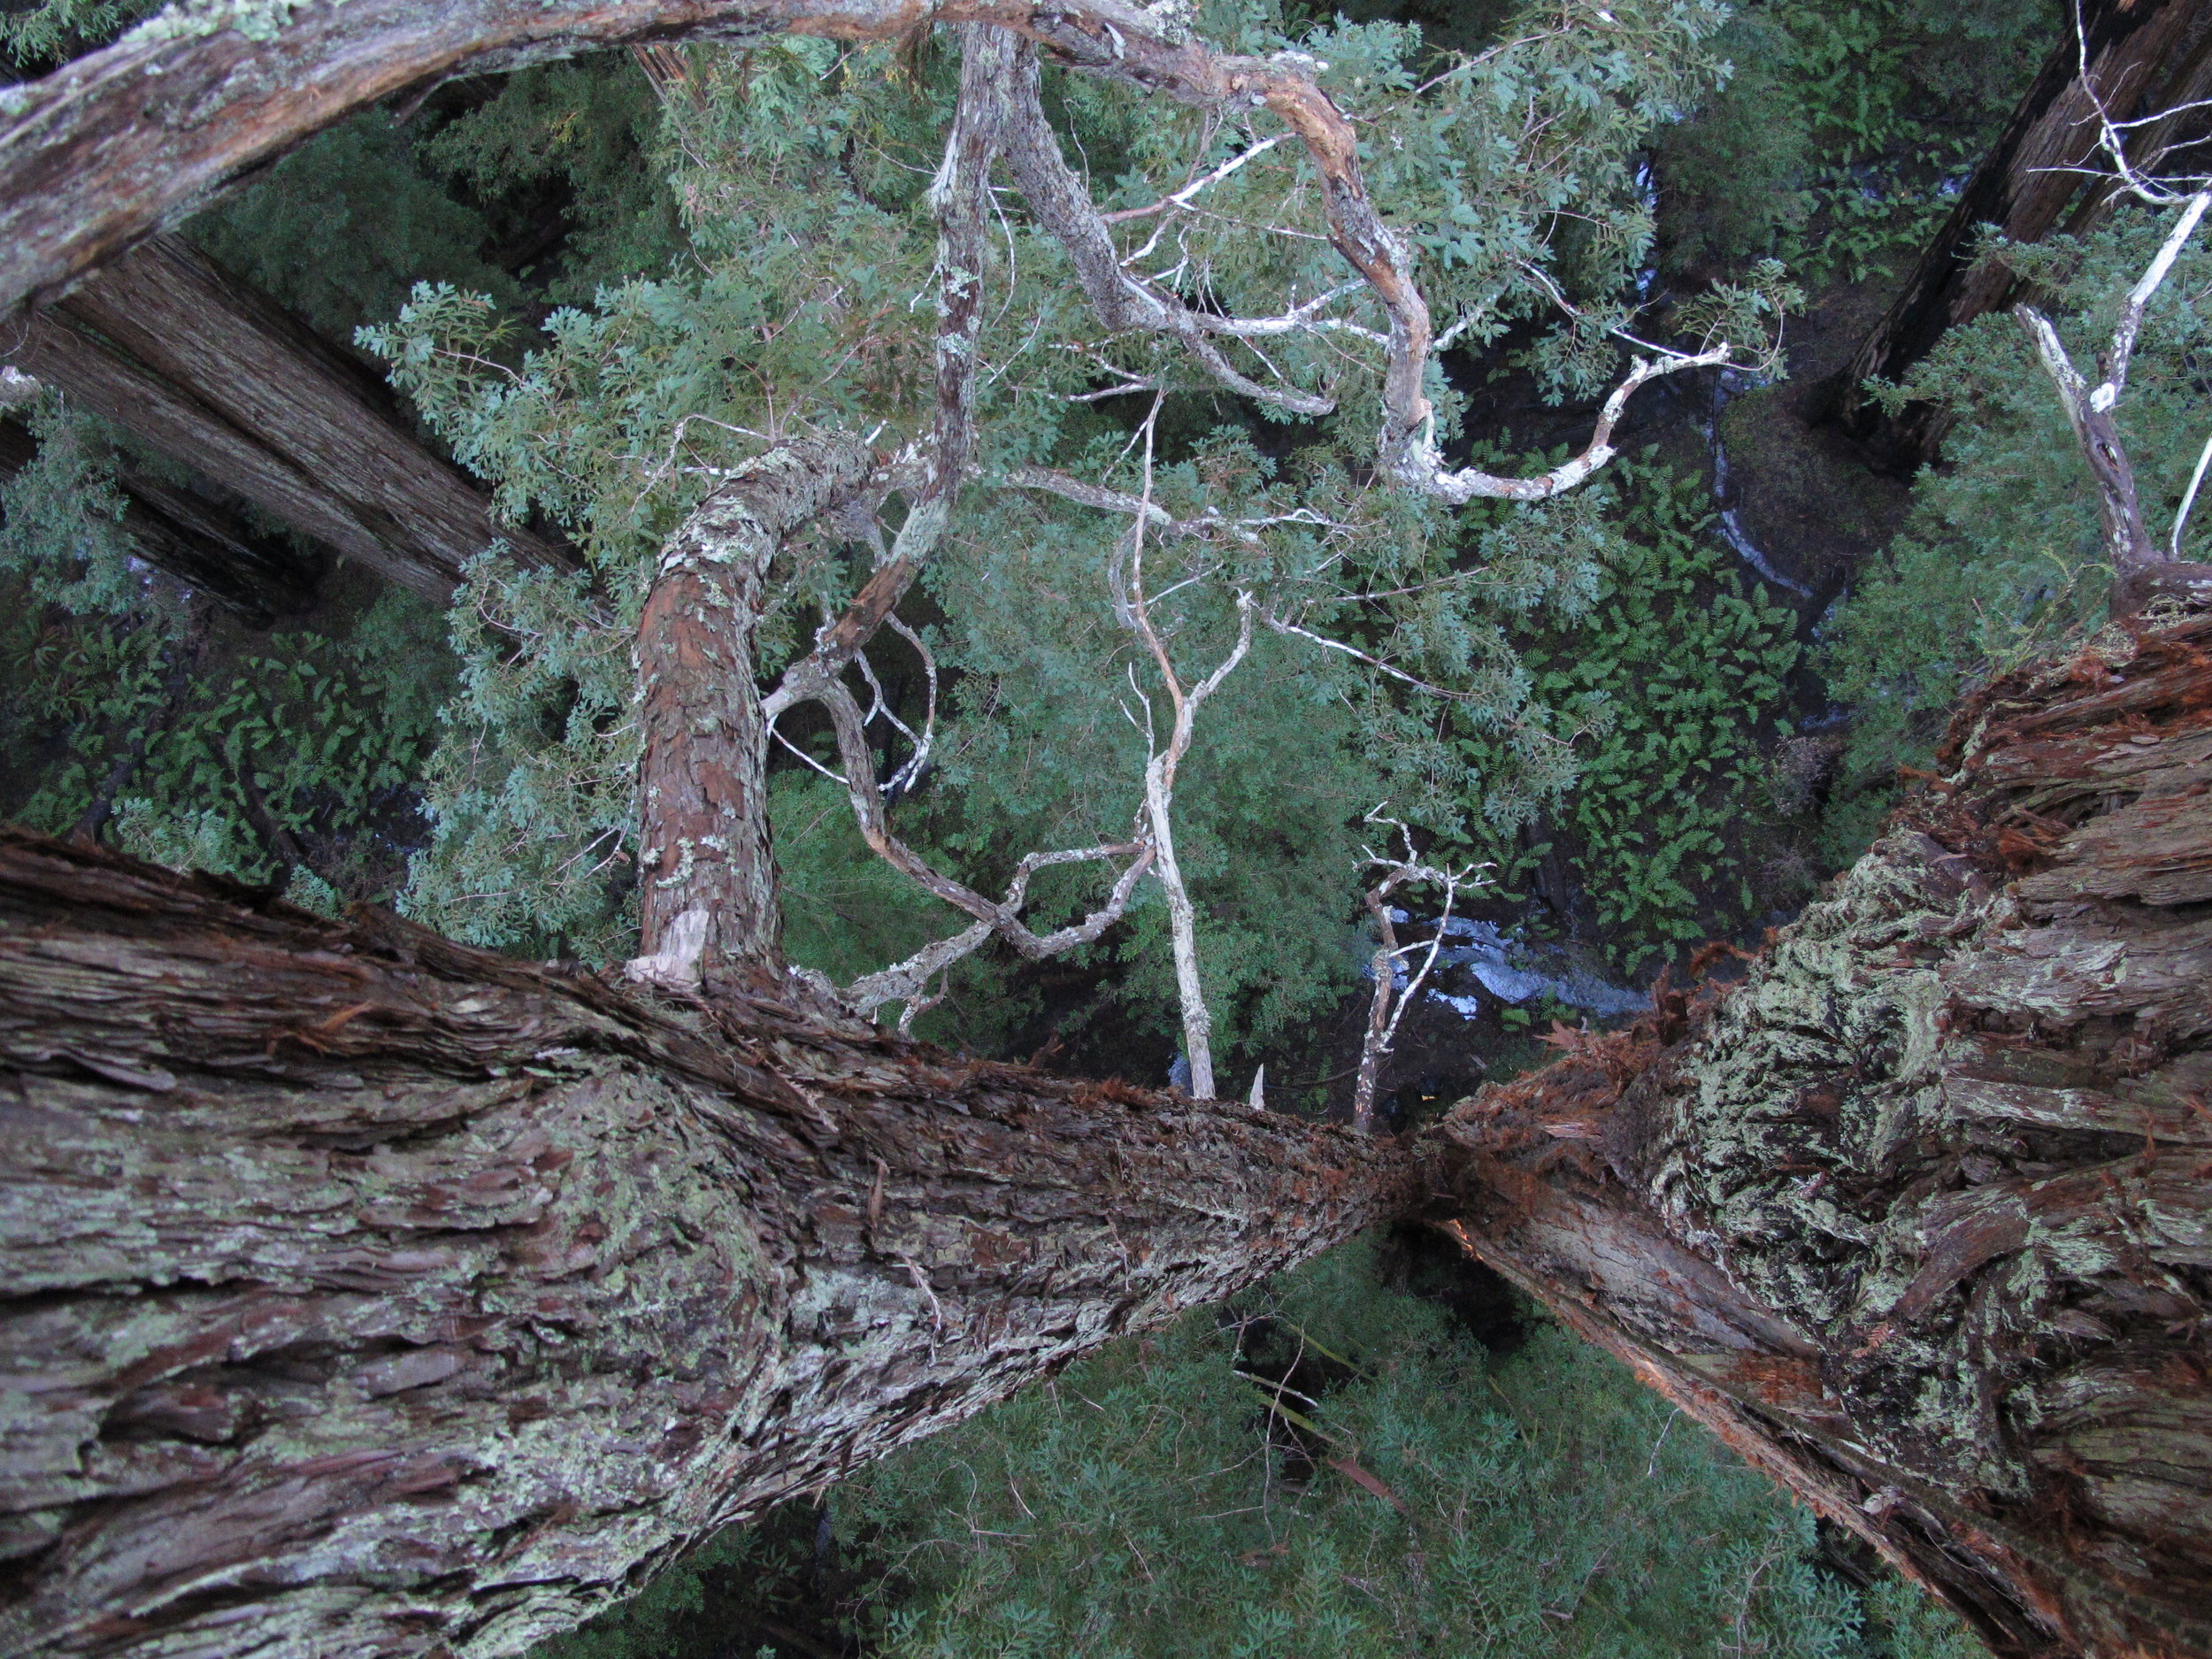 A note on tree climbing -